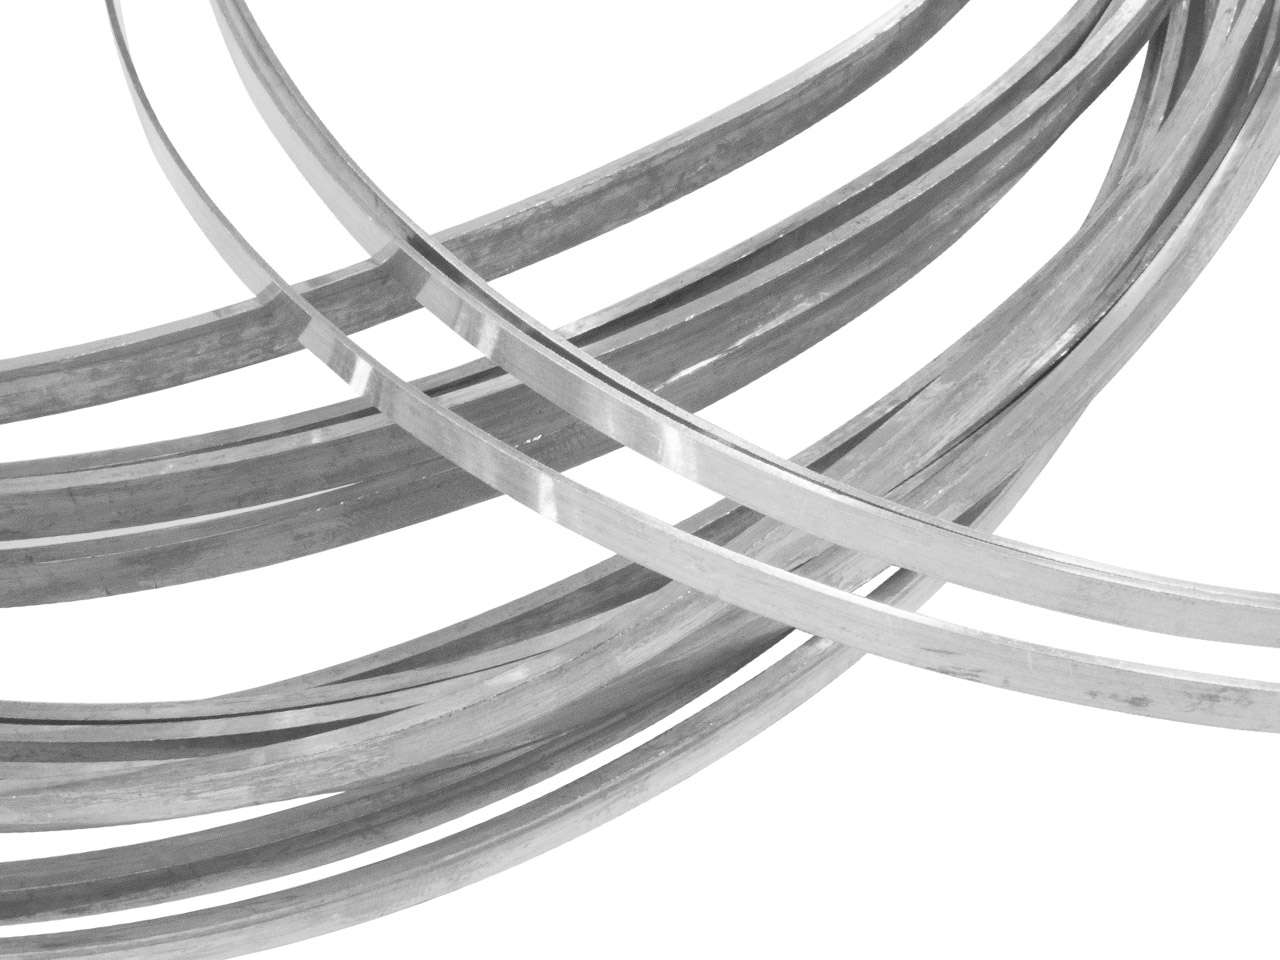 Sterling Silver Rectangular Wire   6.0mm X 1.2mm Fully Annealed